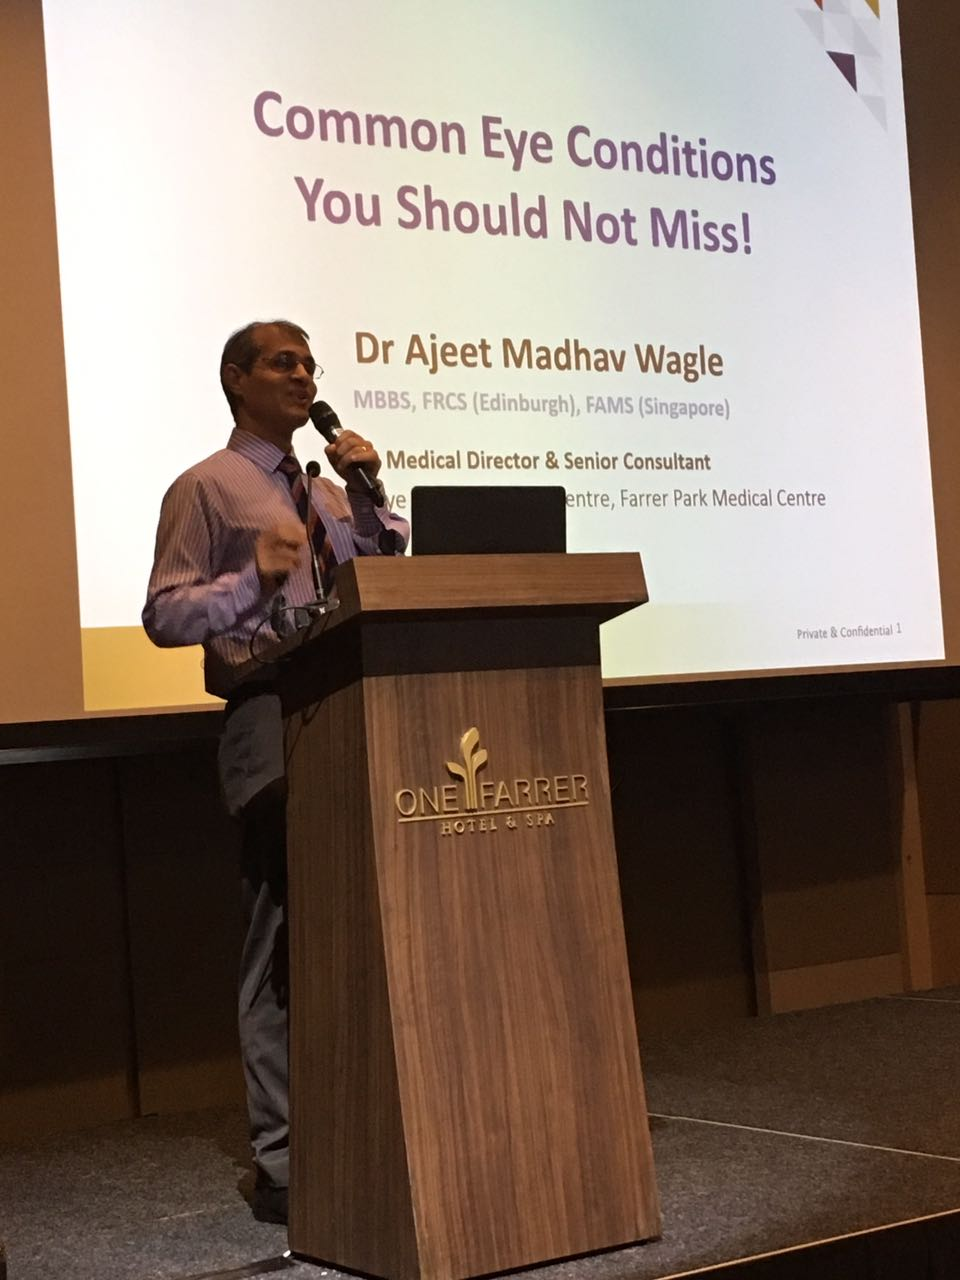 """Dr Ajeet Madhav Wagle delivering his lecture titled """"Common Eye Conditions You Should Not Miss!"""" at the free public forum organised by Farrer Park Hospital on 24 June 2017."""